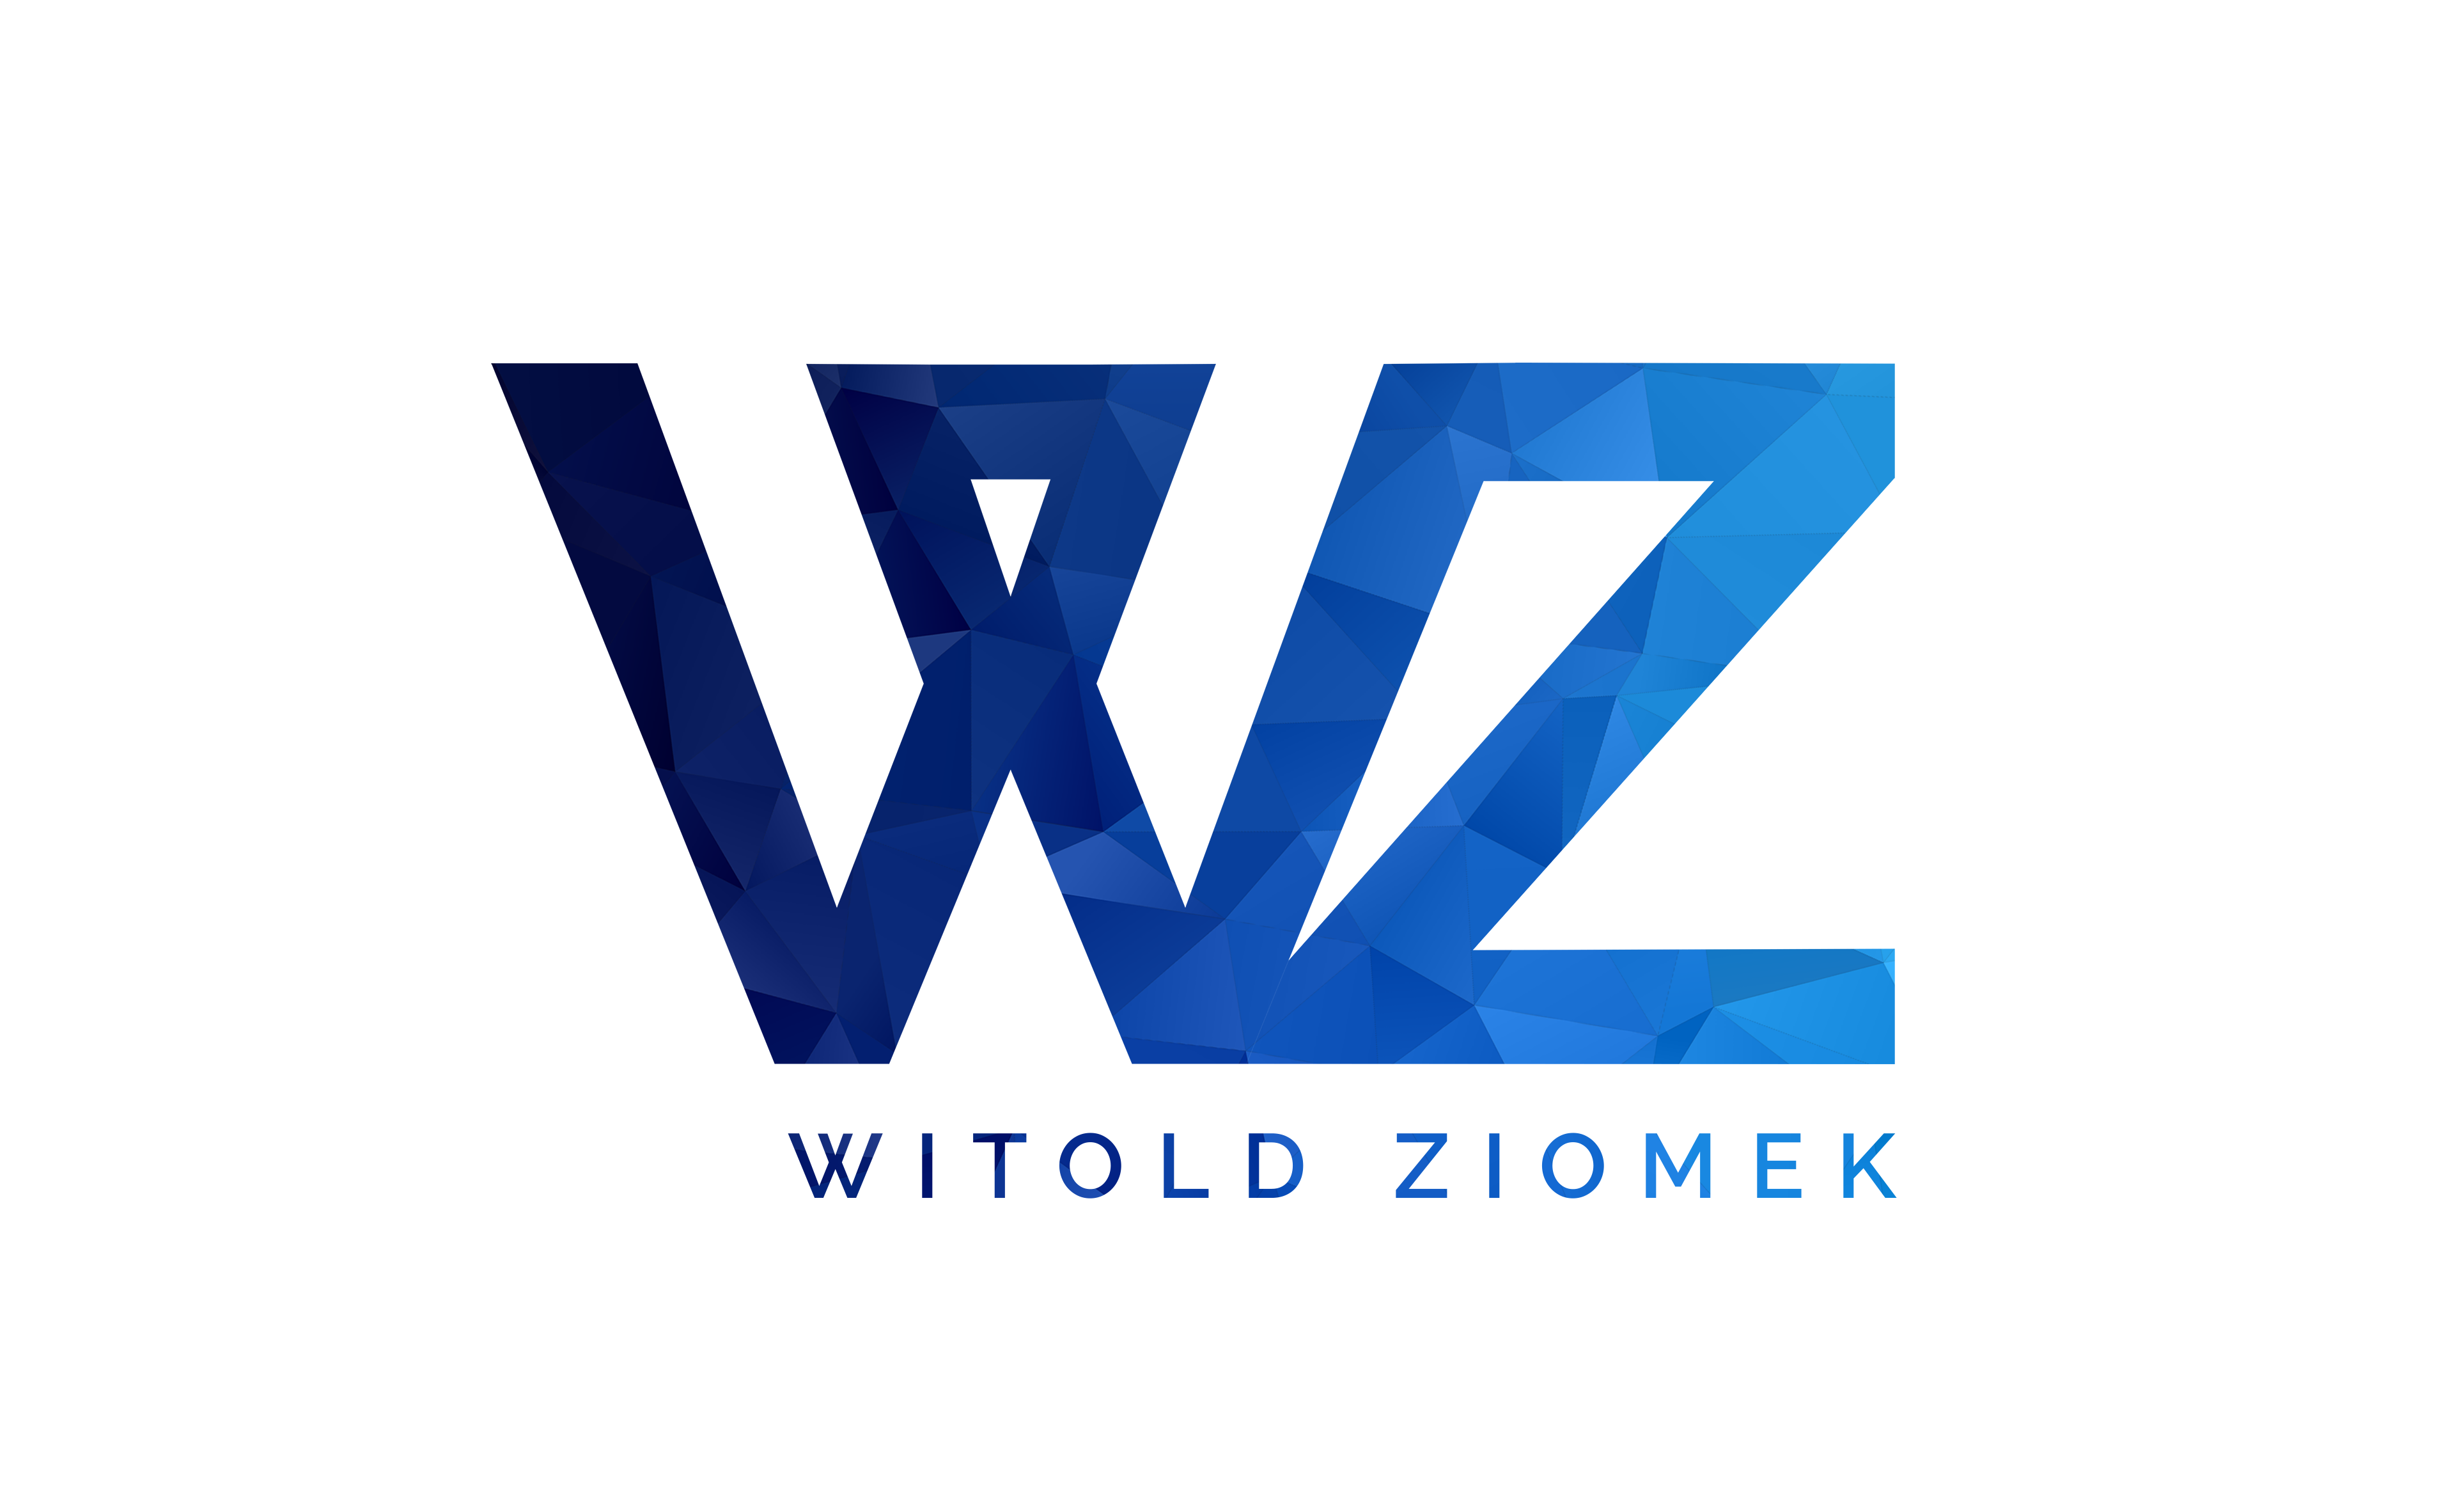 Witold Ziomek